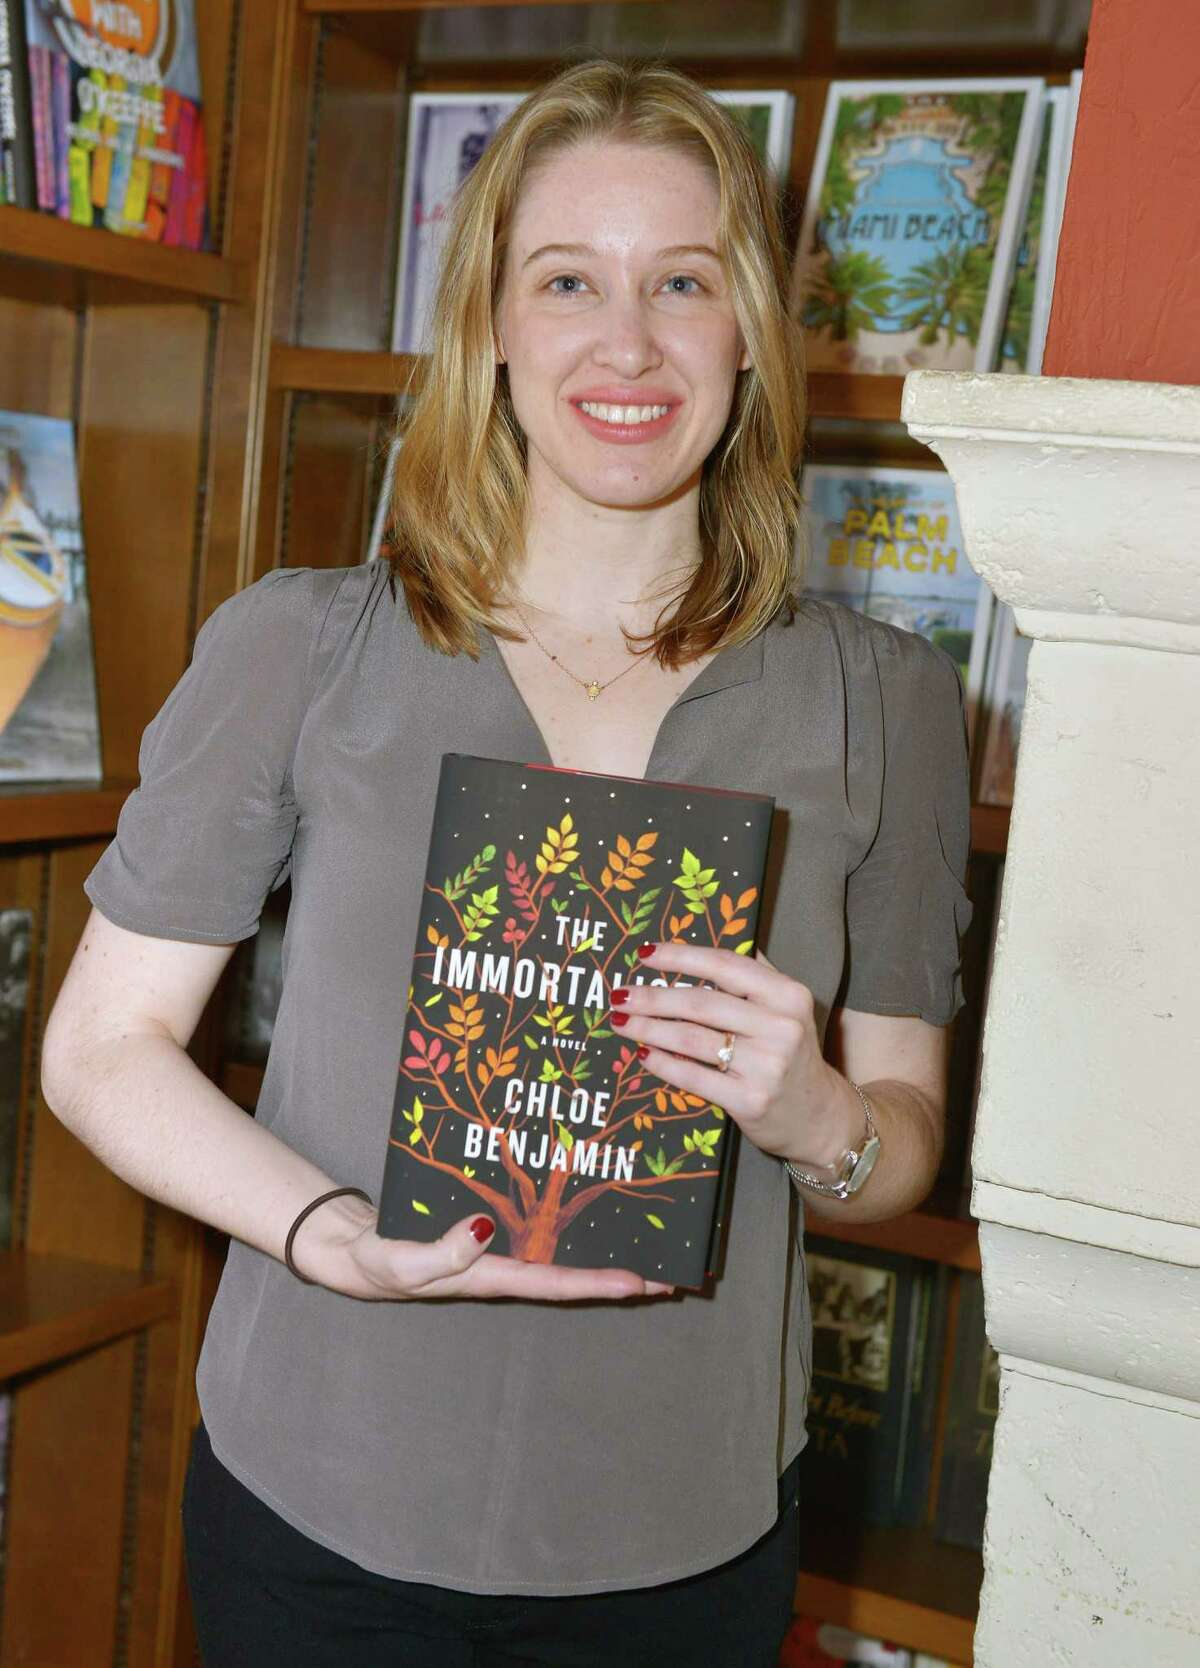 CORAL GABLES, FL - MARCH 13: Author Chloe Benjamin attends a reading and book signing for her new book